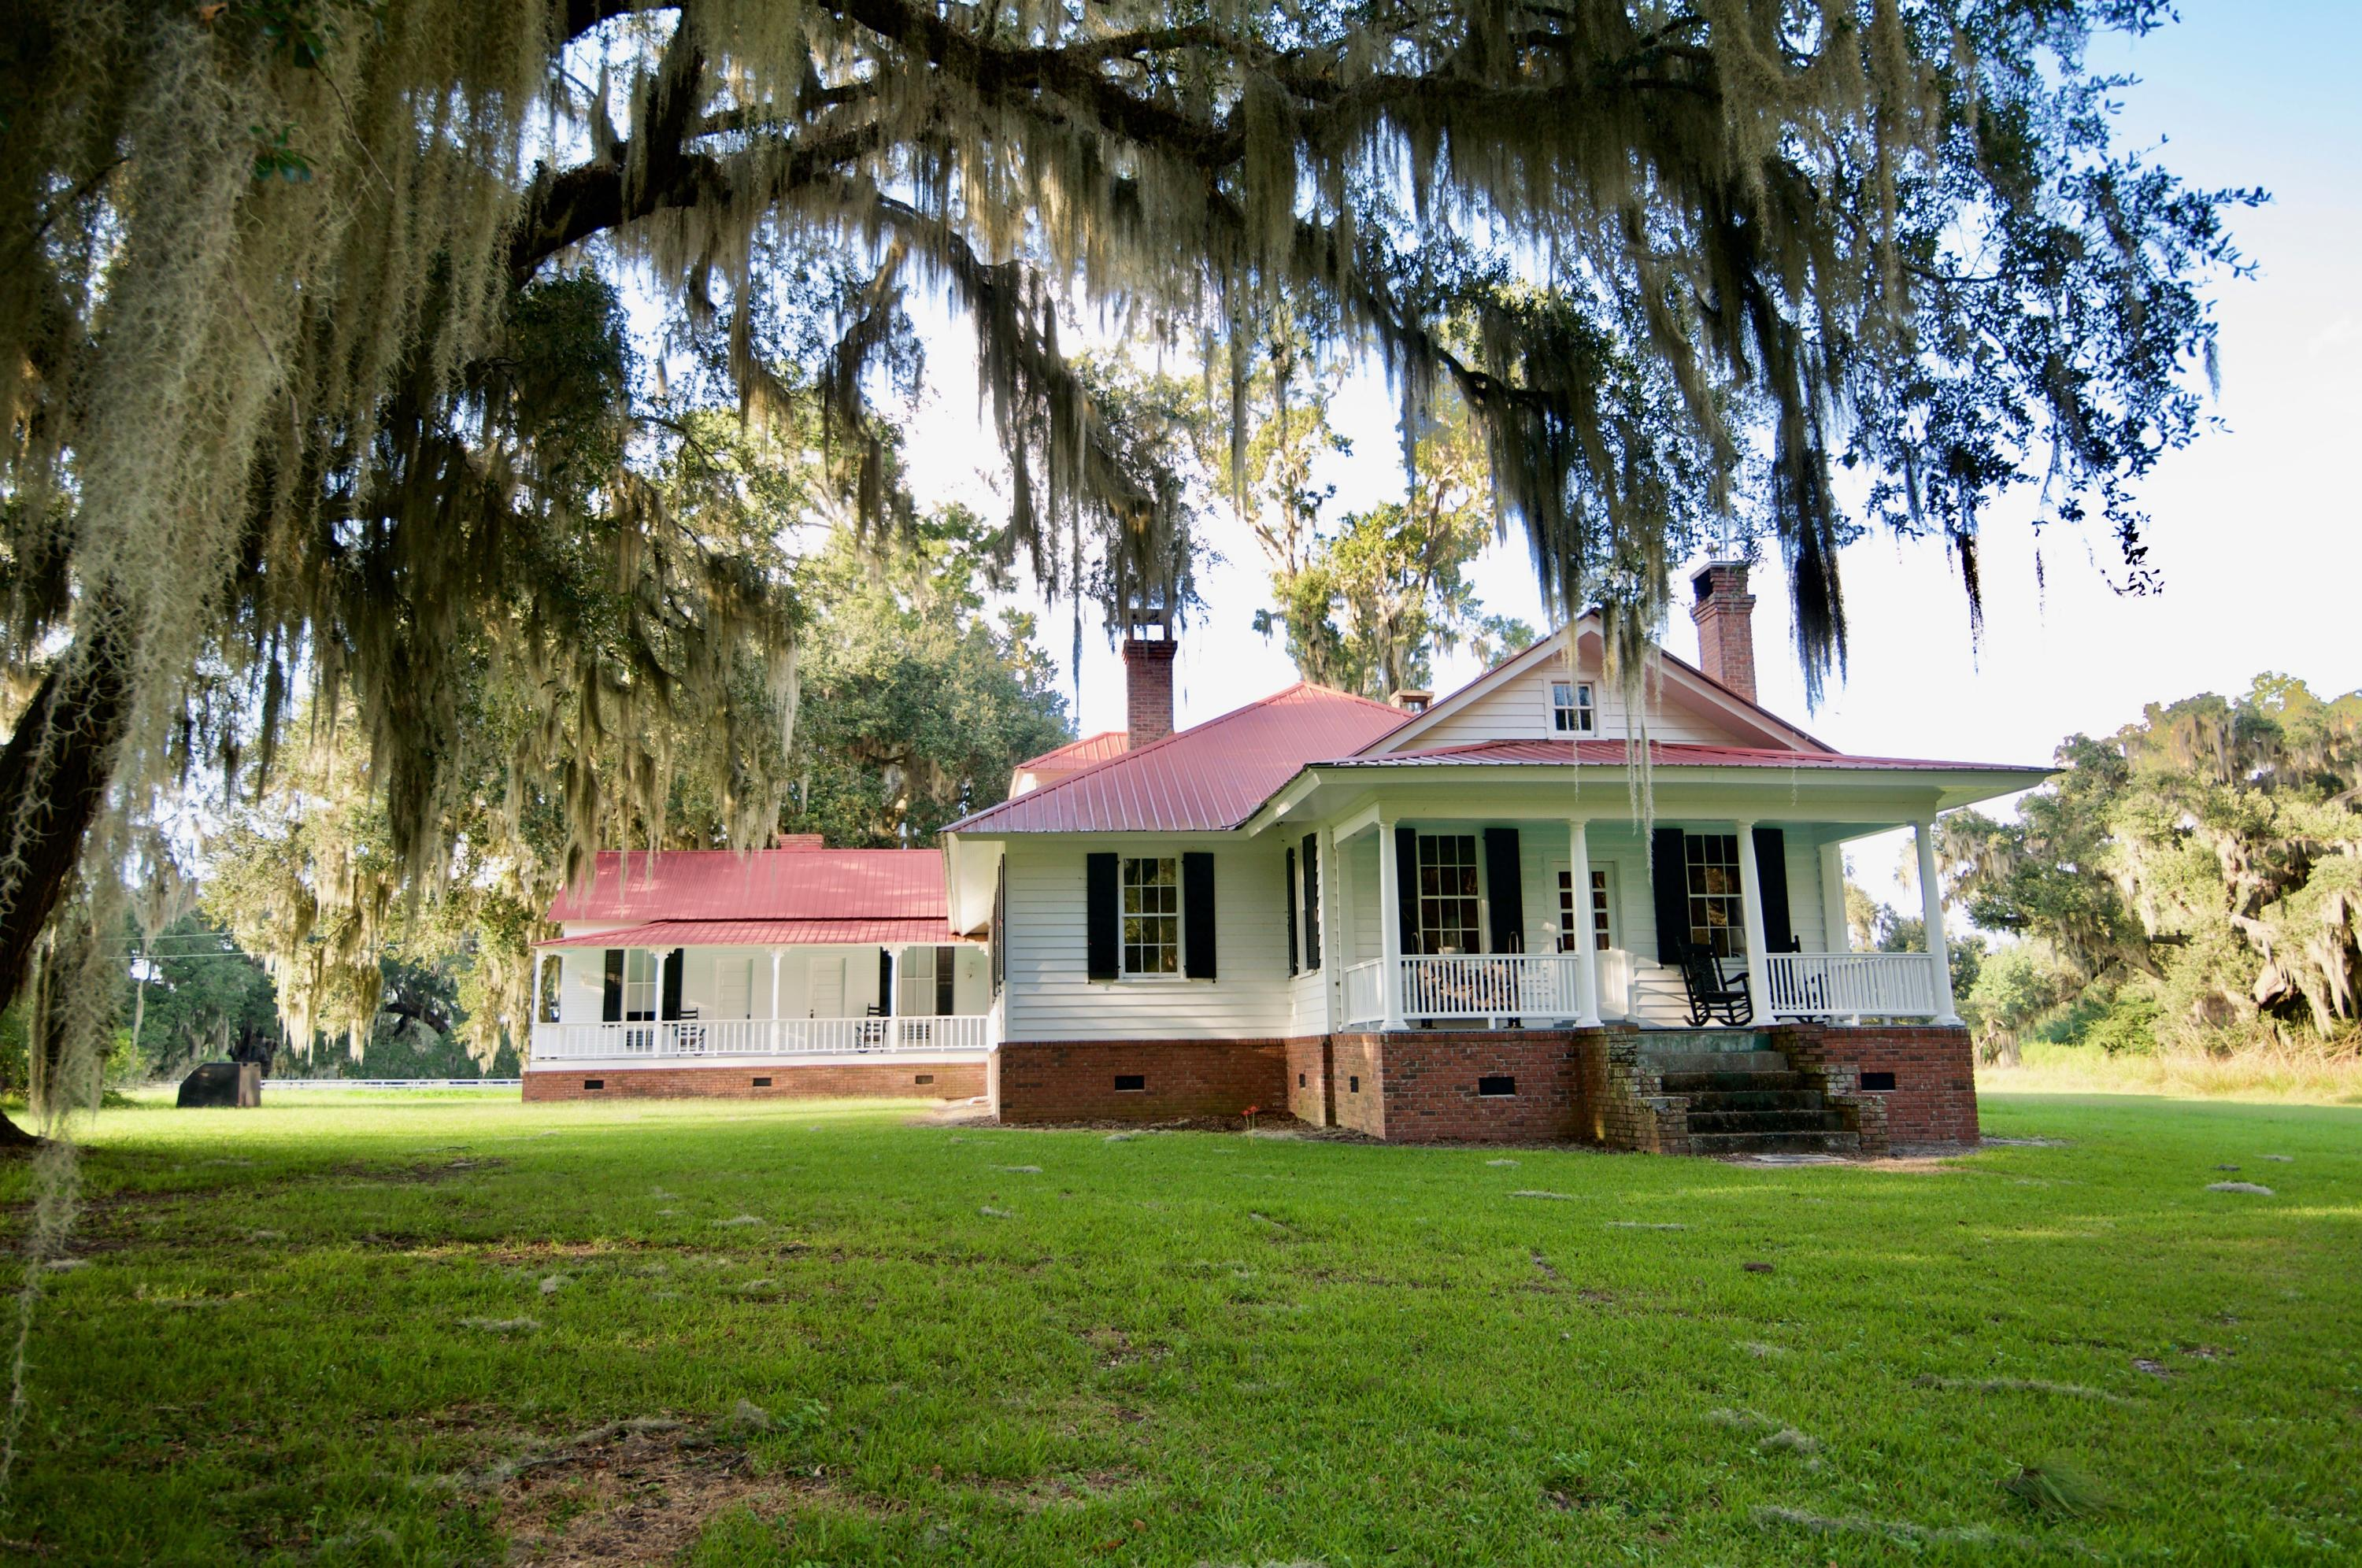 Photo of 300 State Rd S-7-48, Yemassee, SC 29945